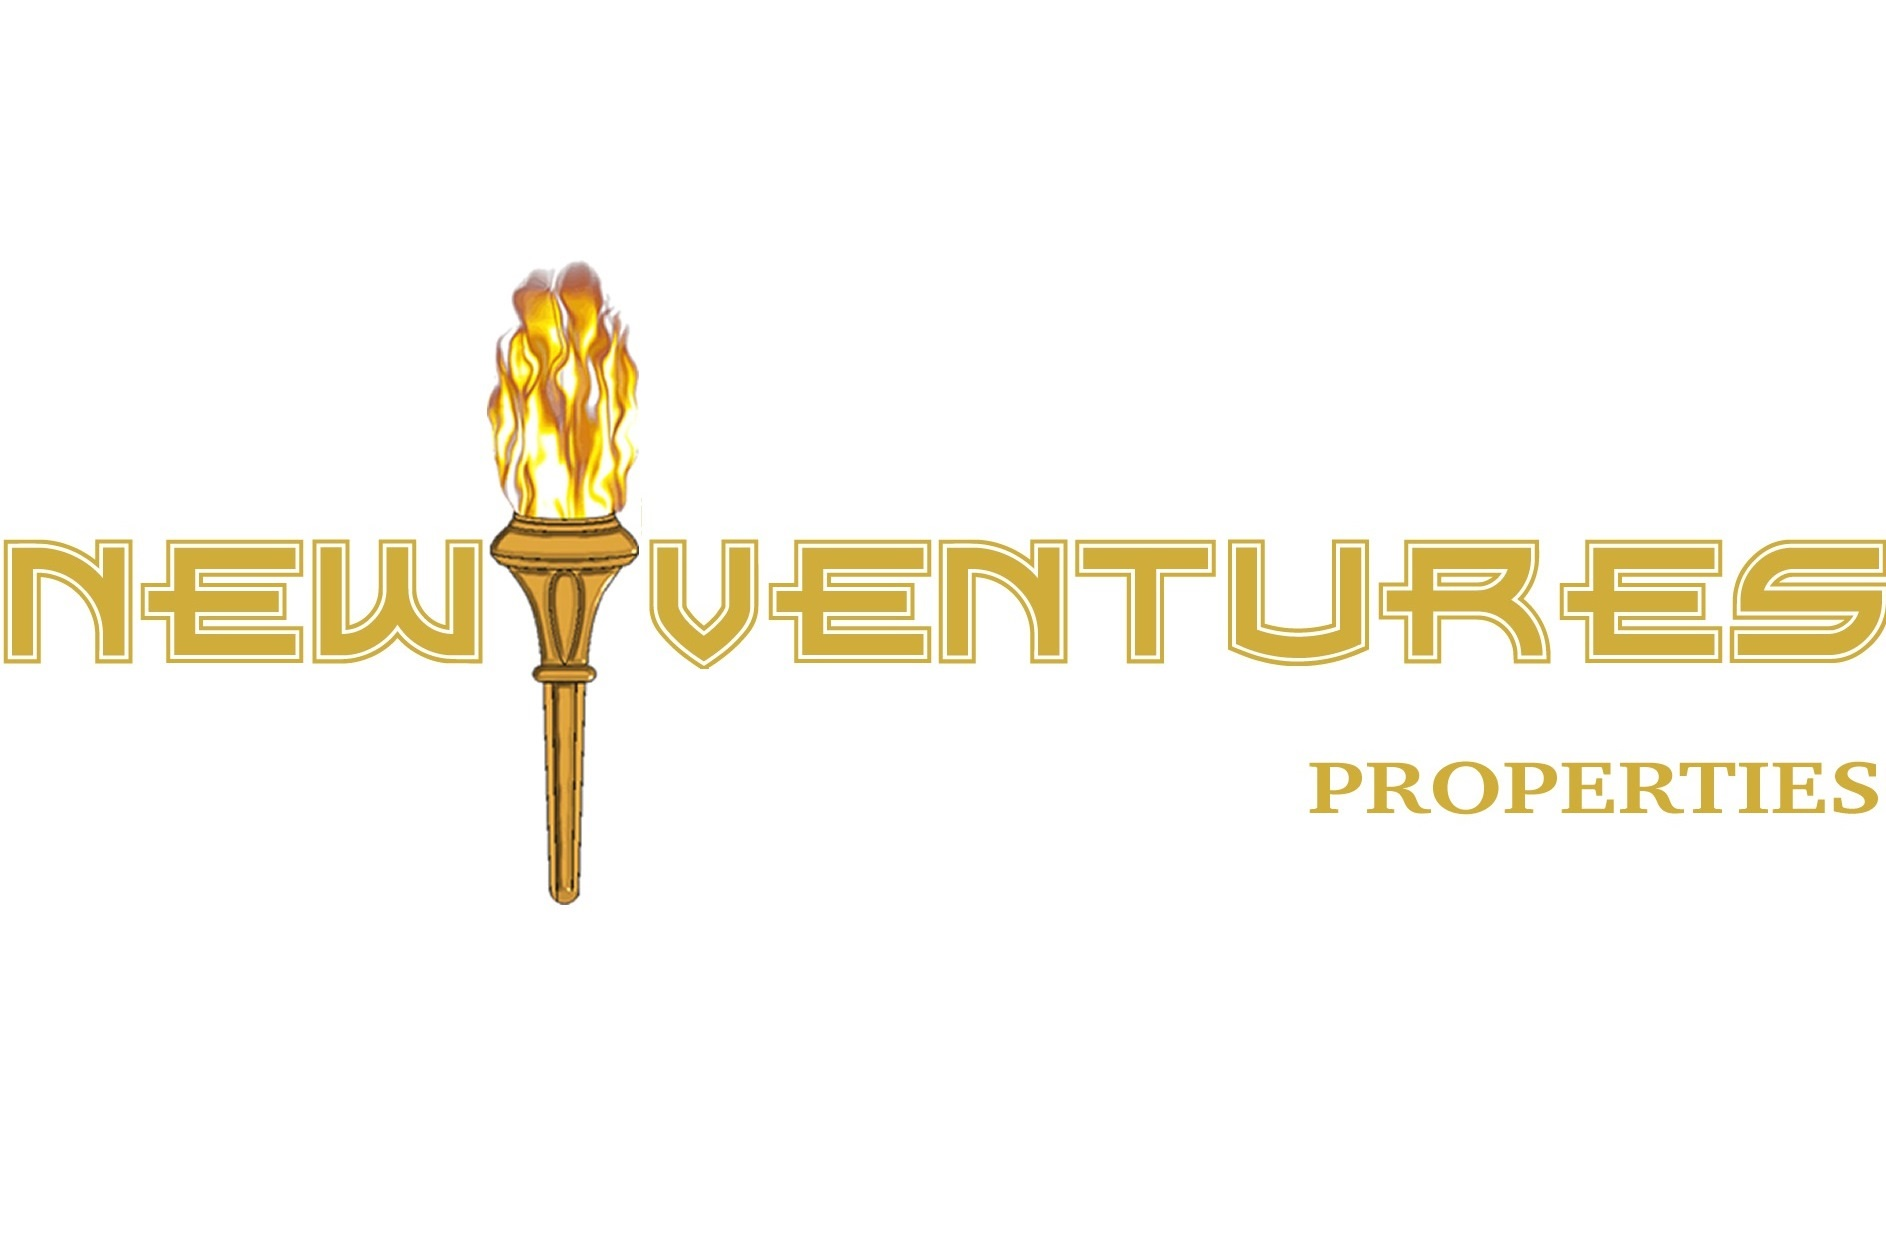 New Ventures Properties